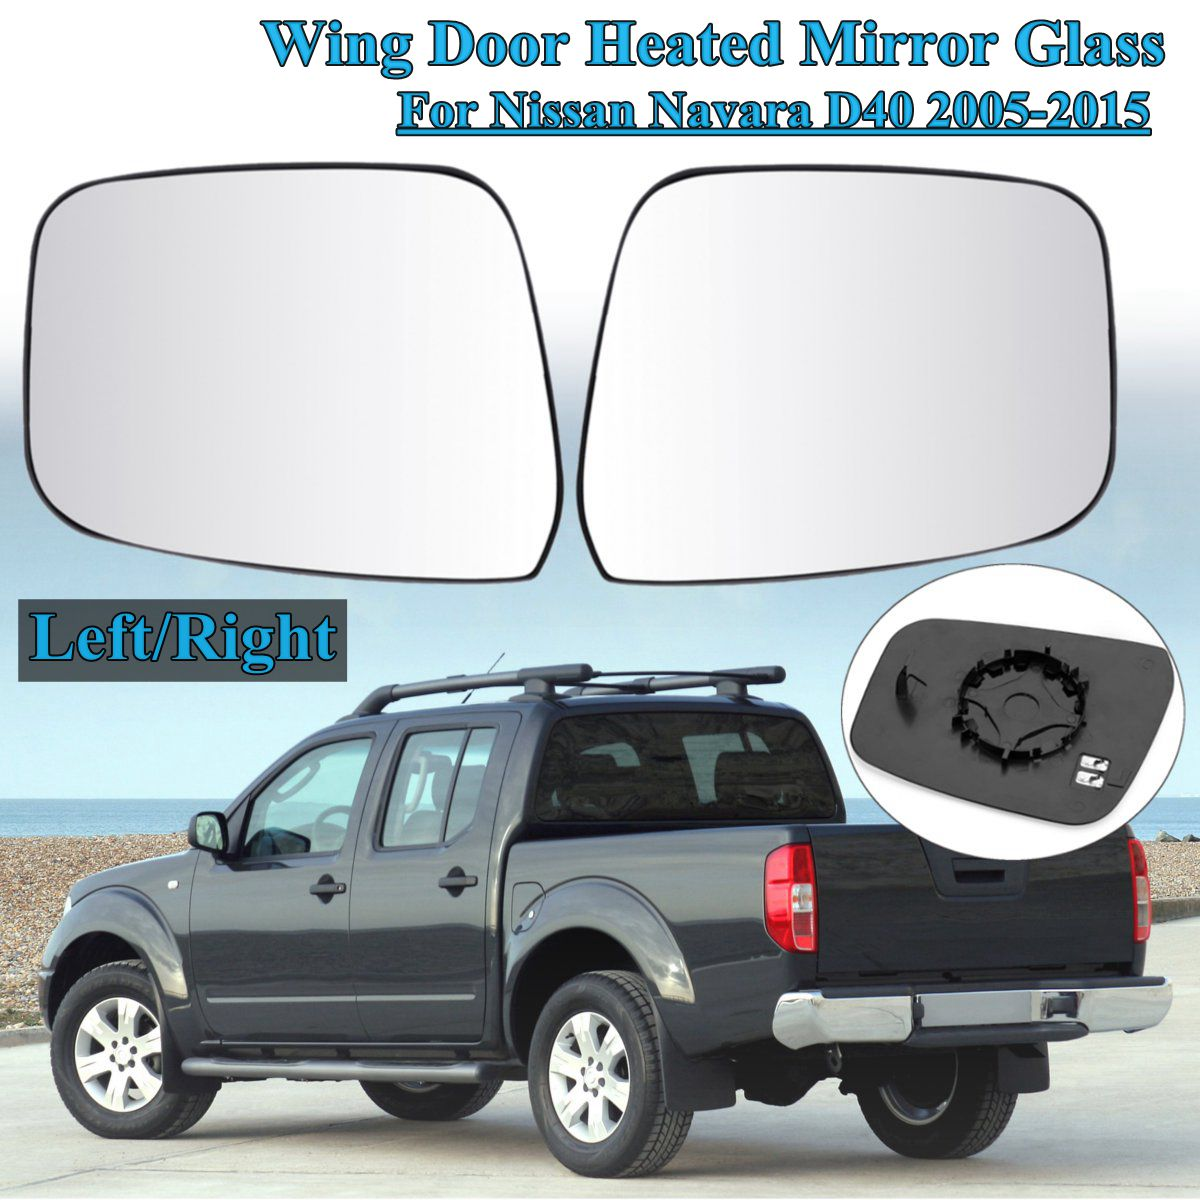 1Pc Left/Right Electric Wing Door Heated Mirror Glass For Nissan Navara D40 2005 2006 2007 2008 2009 2010 2011 2012 2013~2015 abs sensor for nissan navara d40 pathfinder r51 2005 onwards front left right replacement parts 47910 ea025